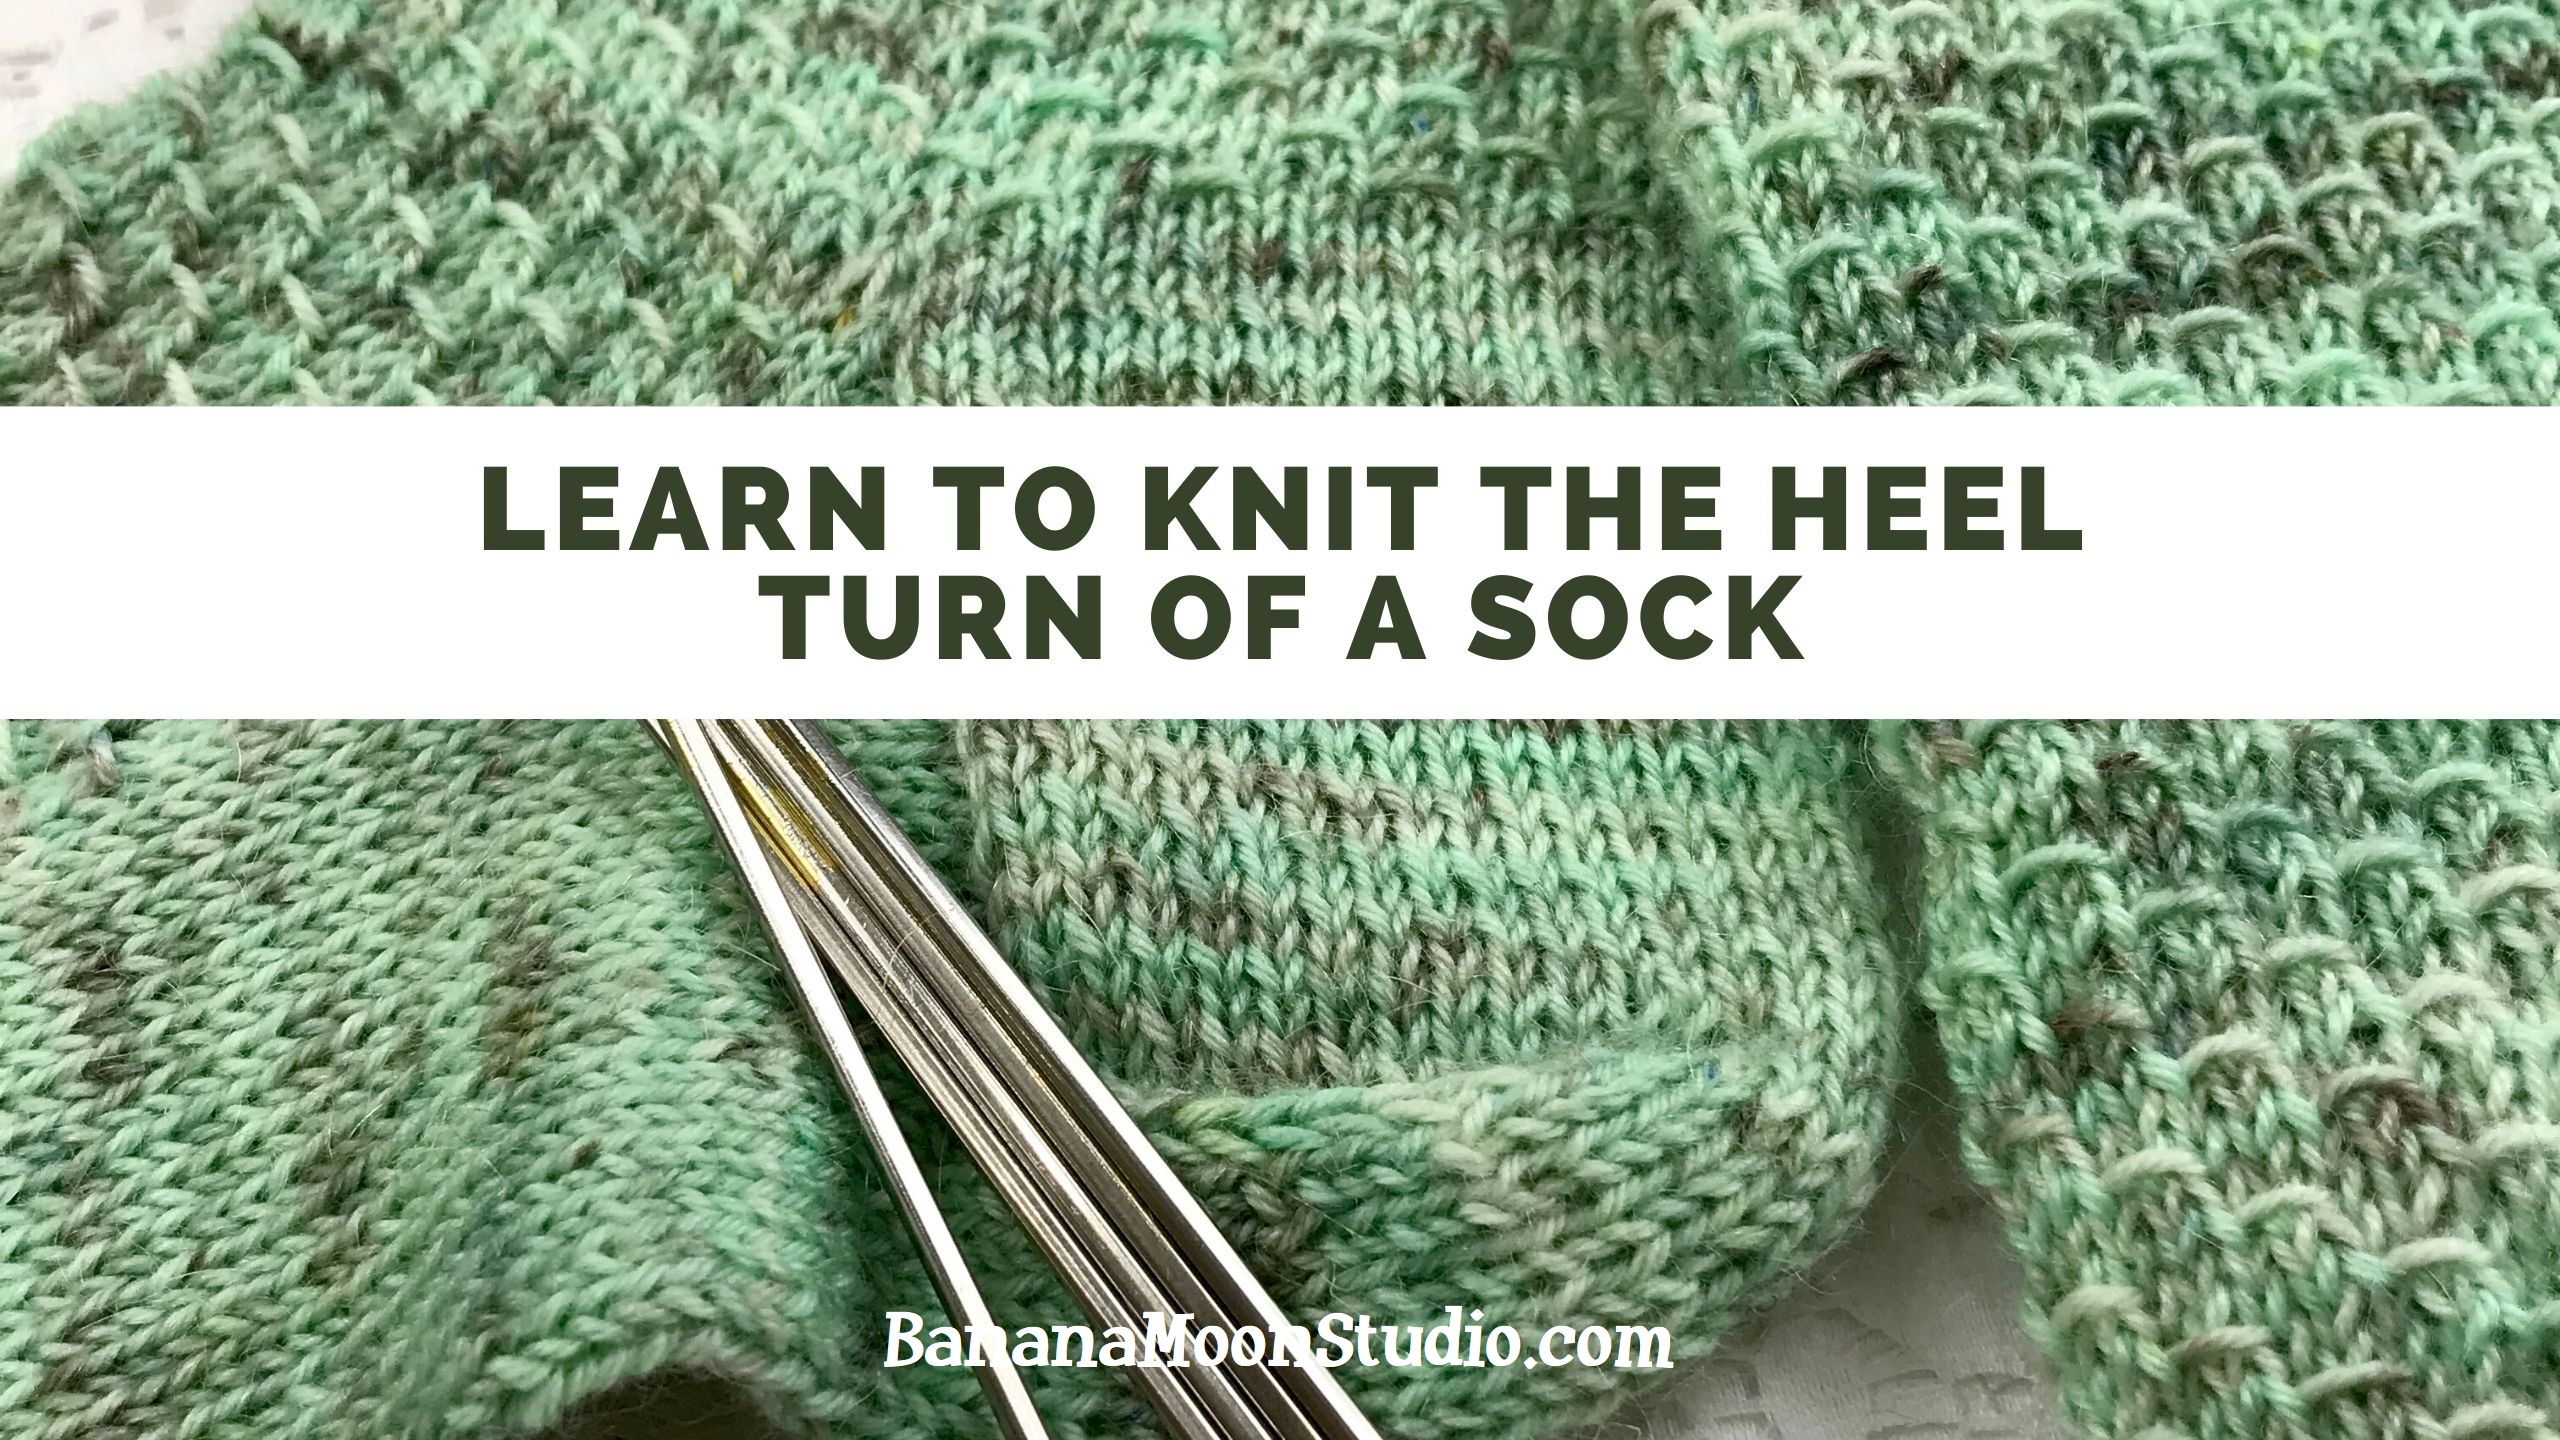 Learn to knit the heel turn of a sock with this video tutorial from Banana Moon Studio! #learntoknitsocks